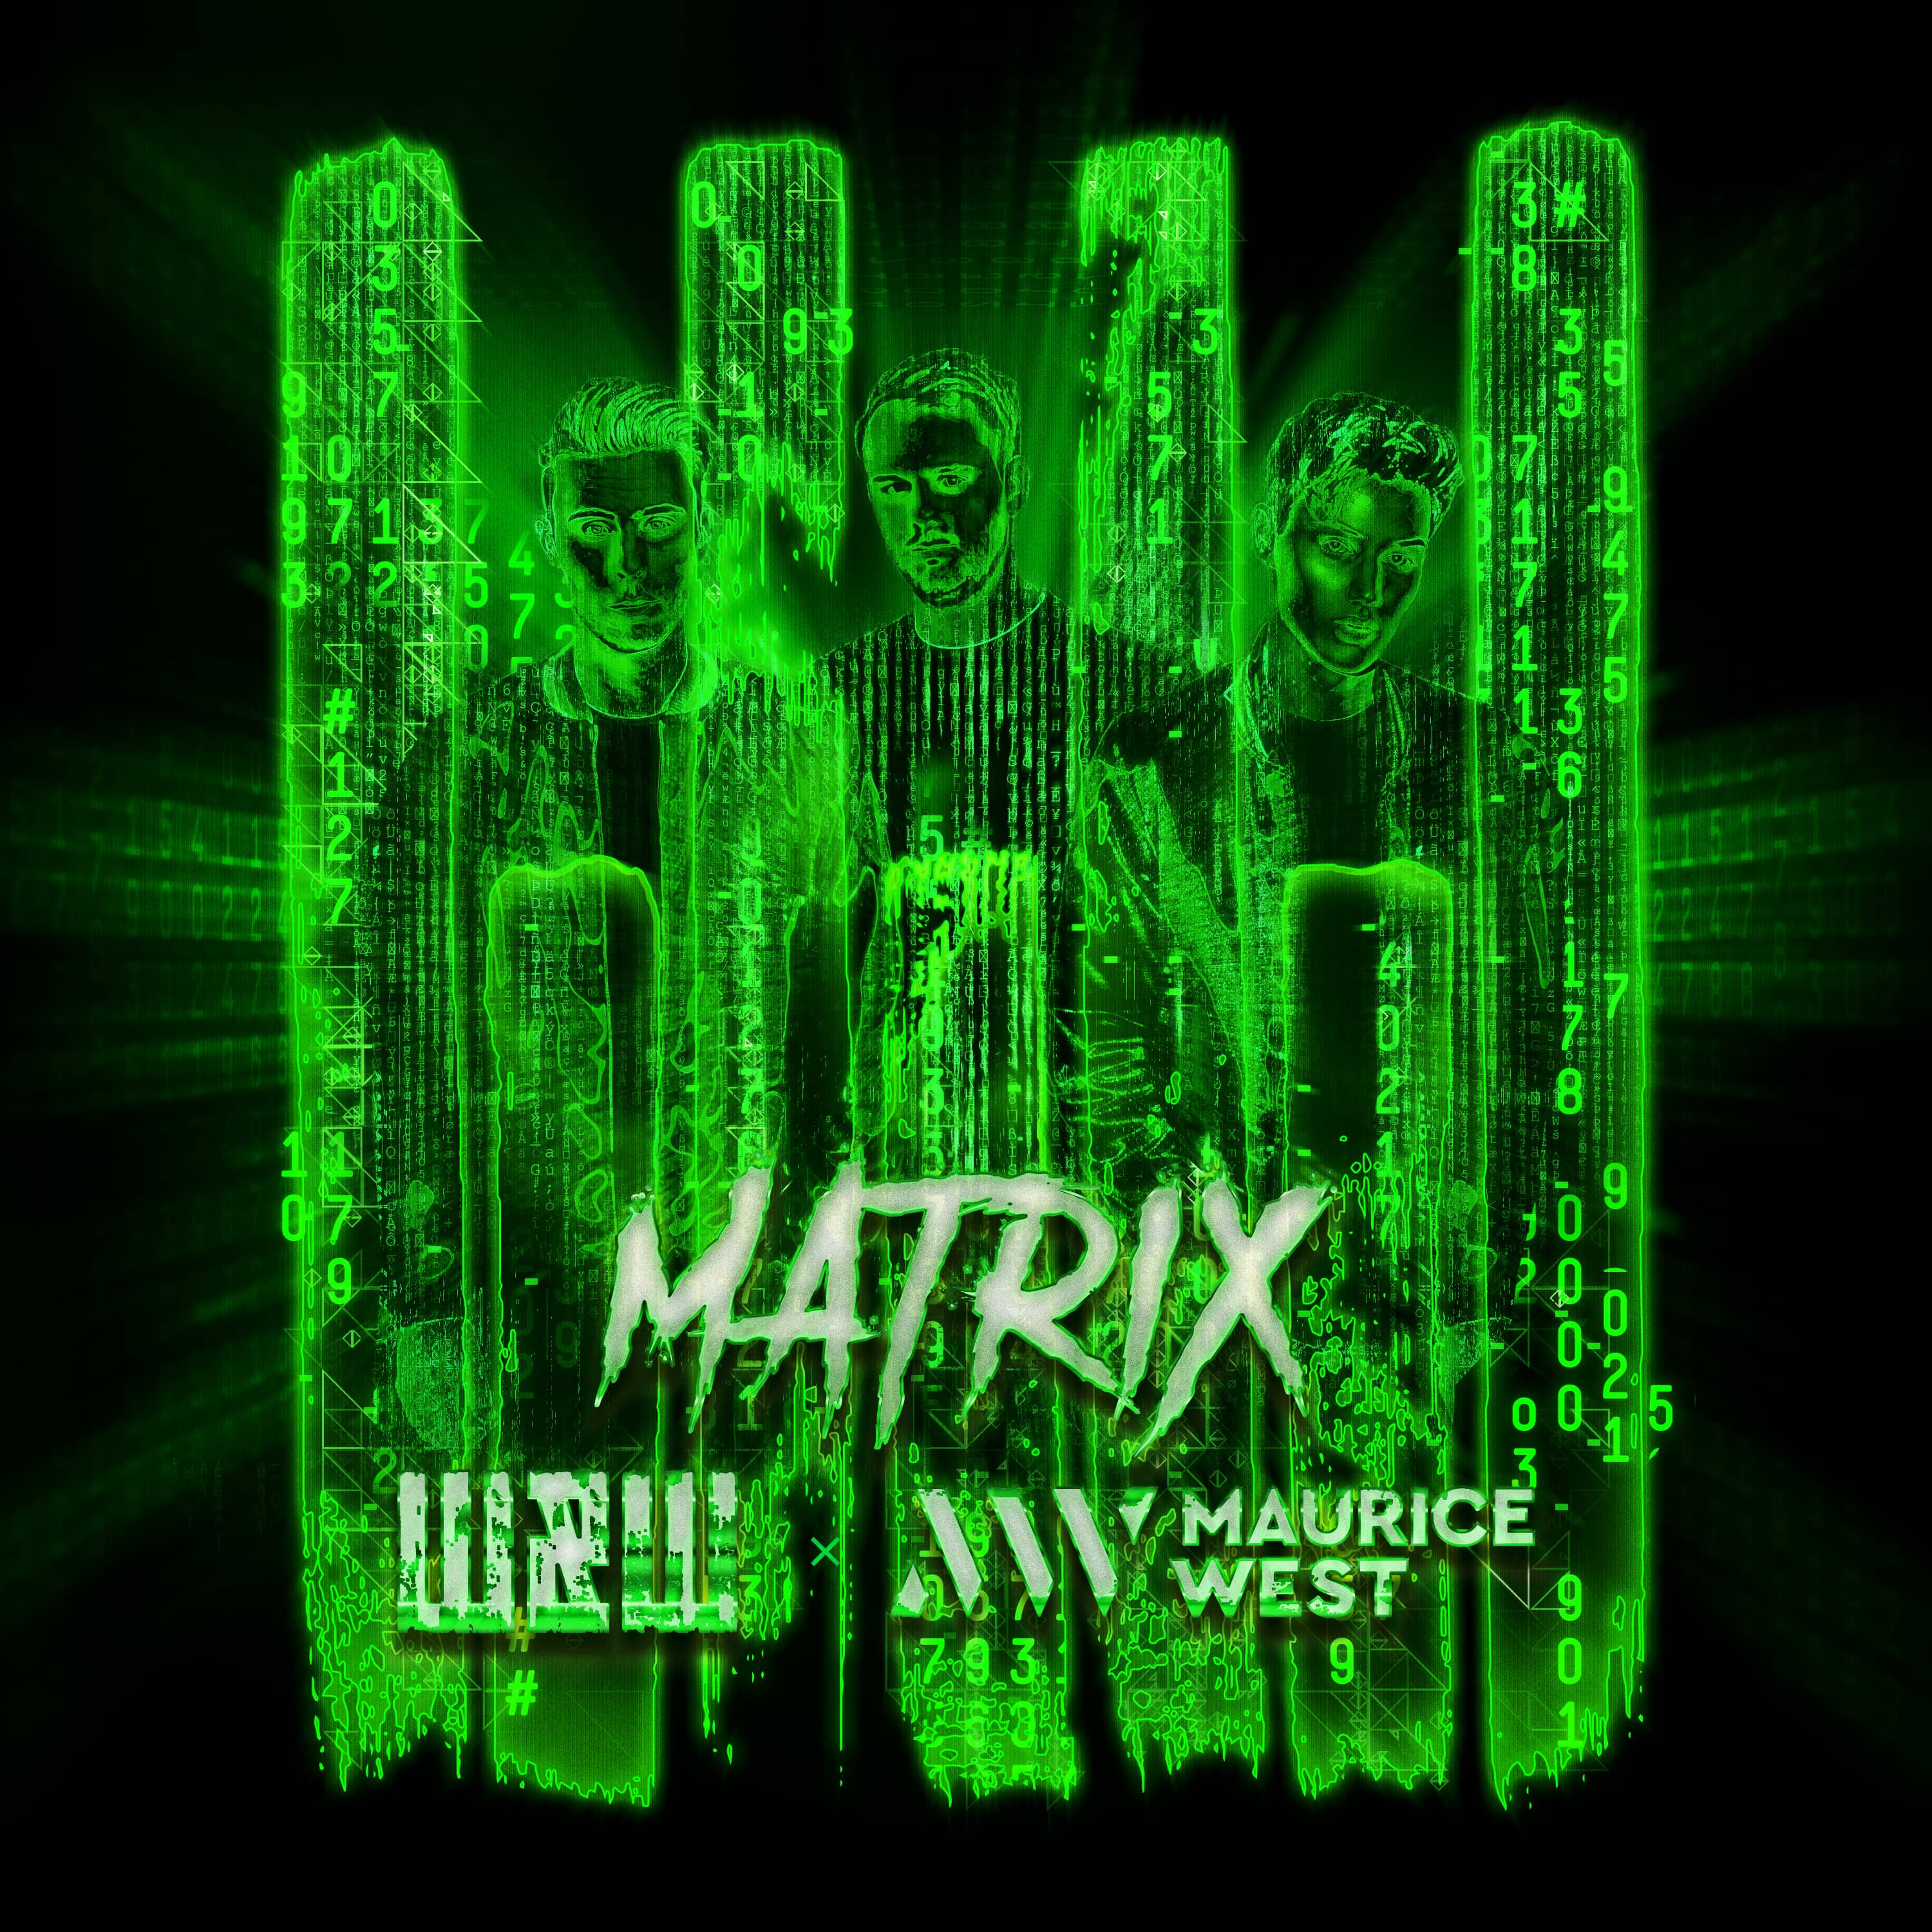 W&W and Maurice West link up for massive banger on Rave Culture: 'Matrix'